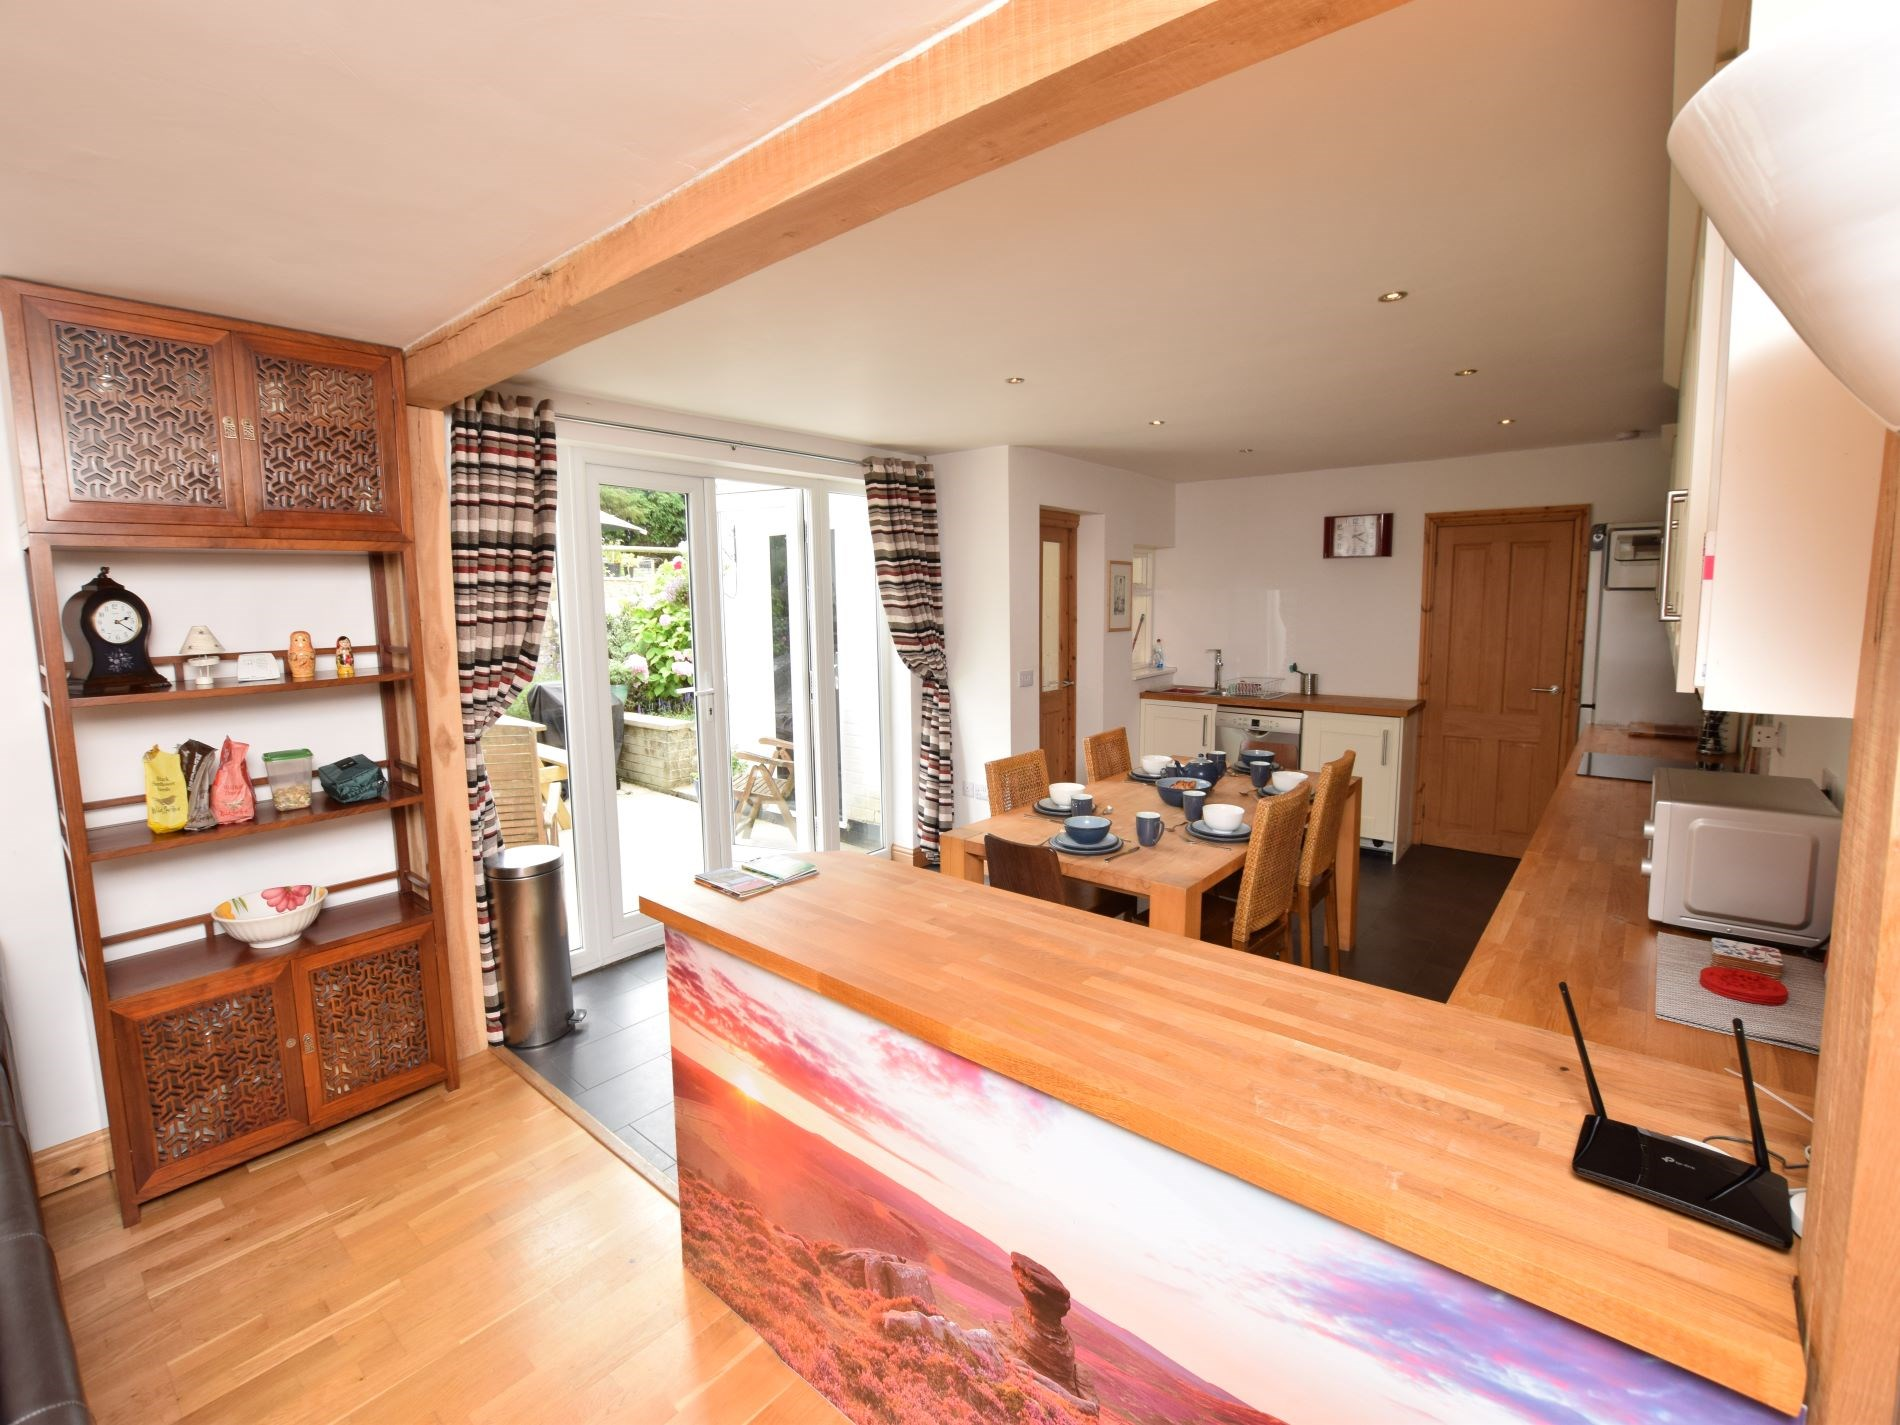 3 Bedroom Cottage in Sheffield, Yorkshire Dales